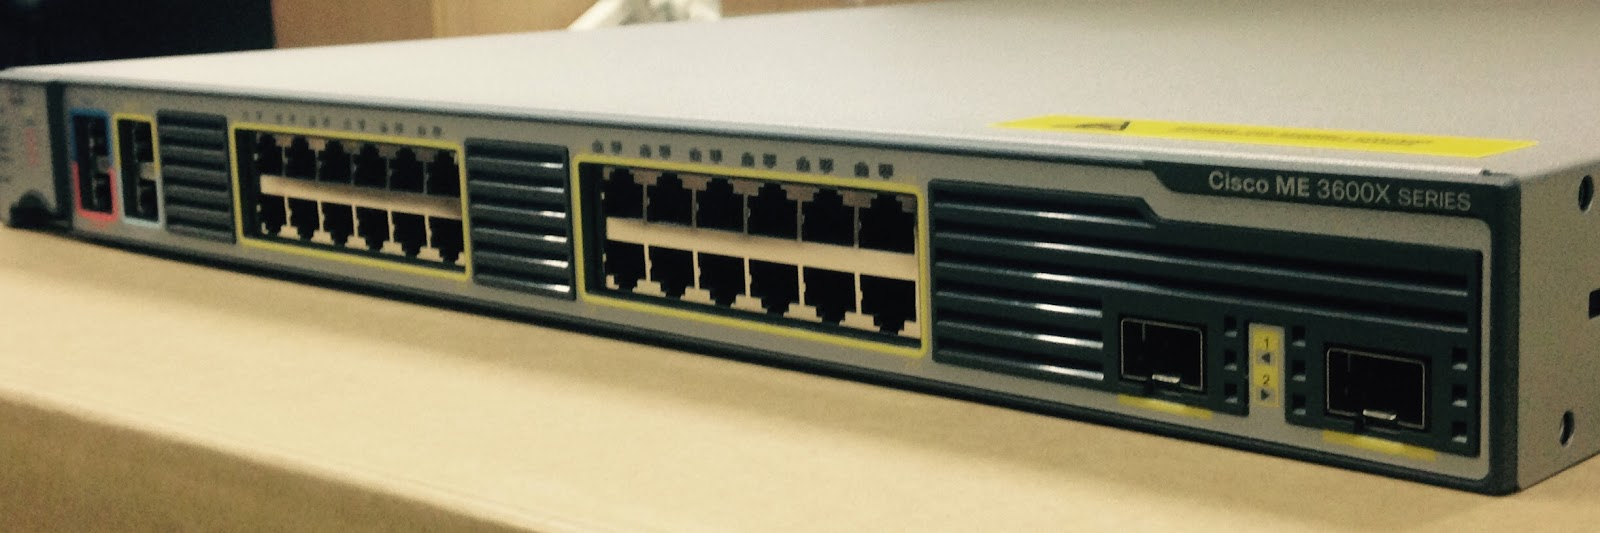 My Network Lab April 2015 Configure Terminalinterface Range Fa0 4fa0 24switchport Mode Using Driver Version 1 For Media Type